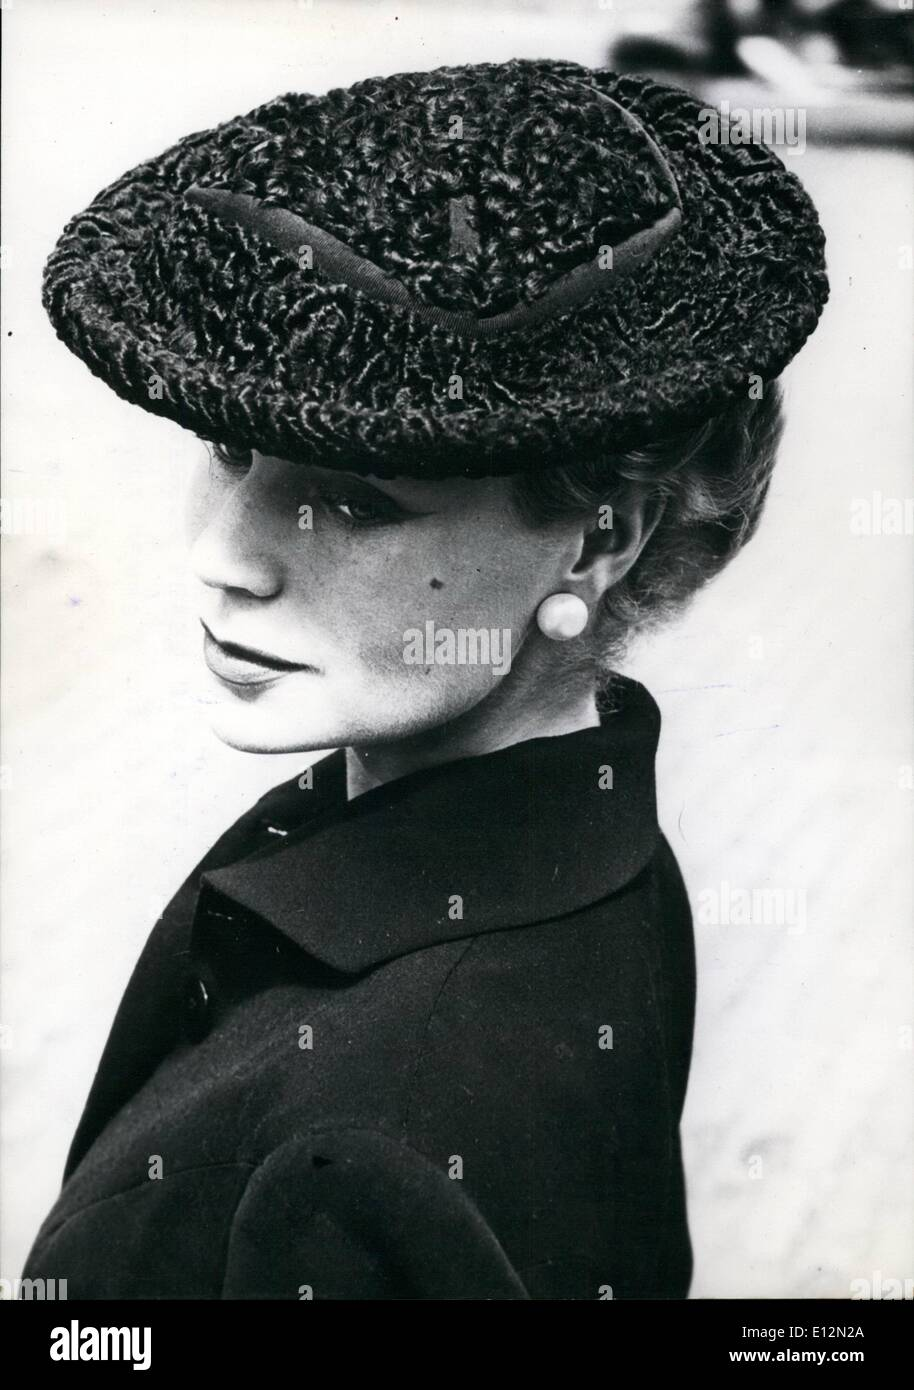 Feb. 24, 2012 - Astrakhan for Coming Winter HaT in grey graphite Astrakhan leant forward. Compulsory mention: Designed by Jacques Fath. - Stock Image